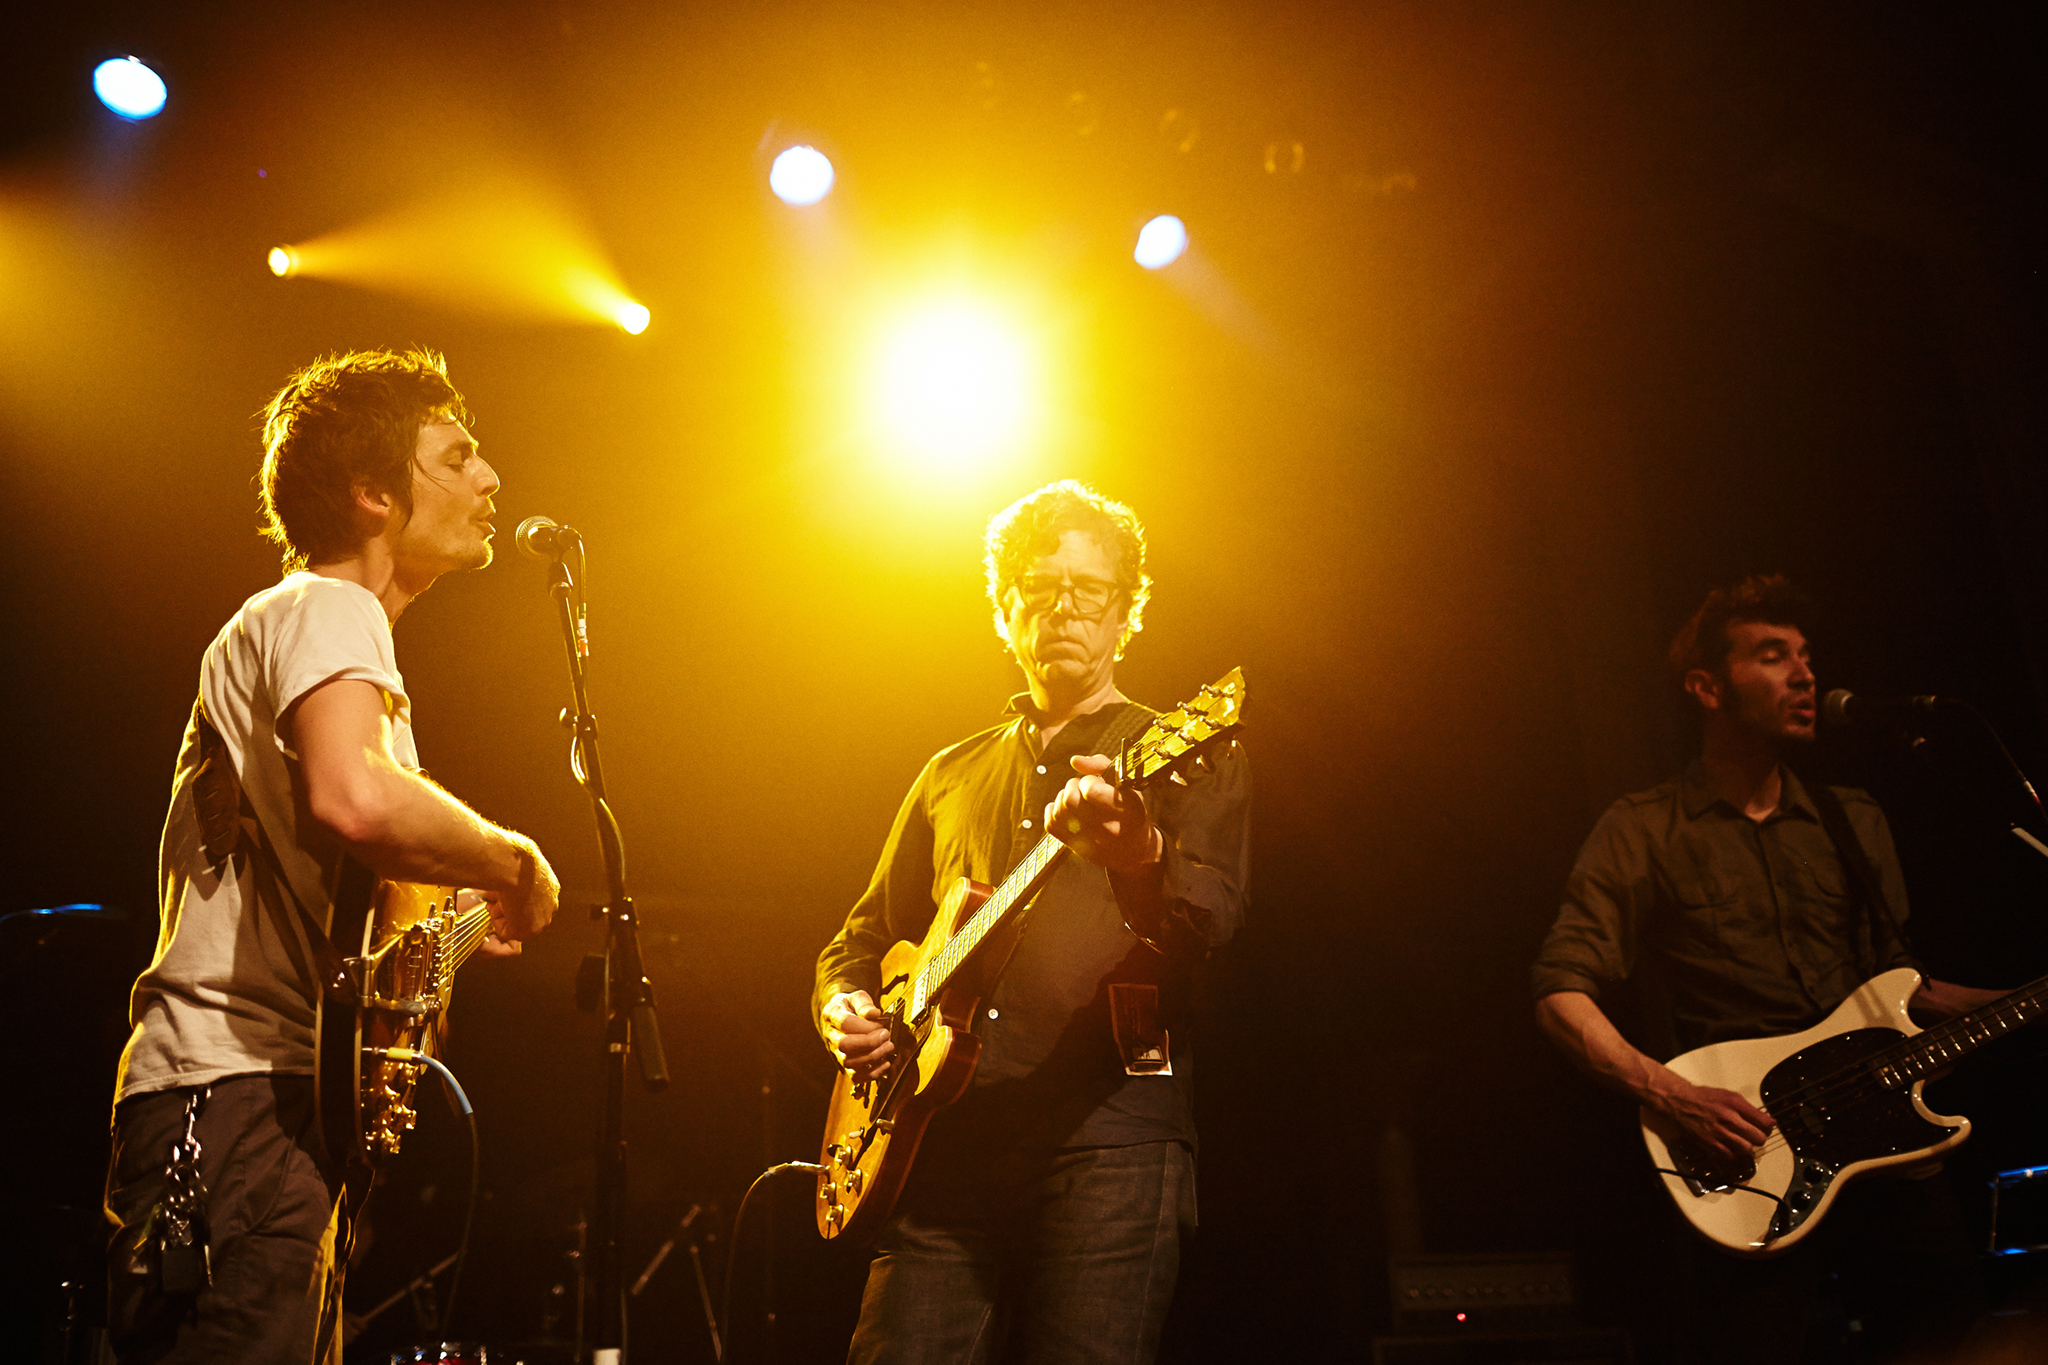 Augustana_At_The_Varsity_Theater_Minneapolis_2014_Photo_By_Joe_Lemke_27.JPG